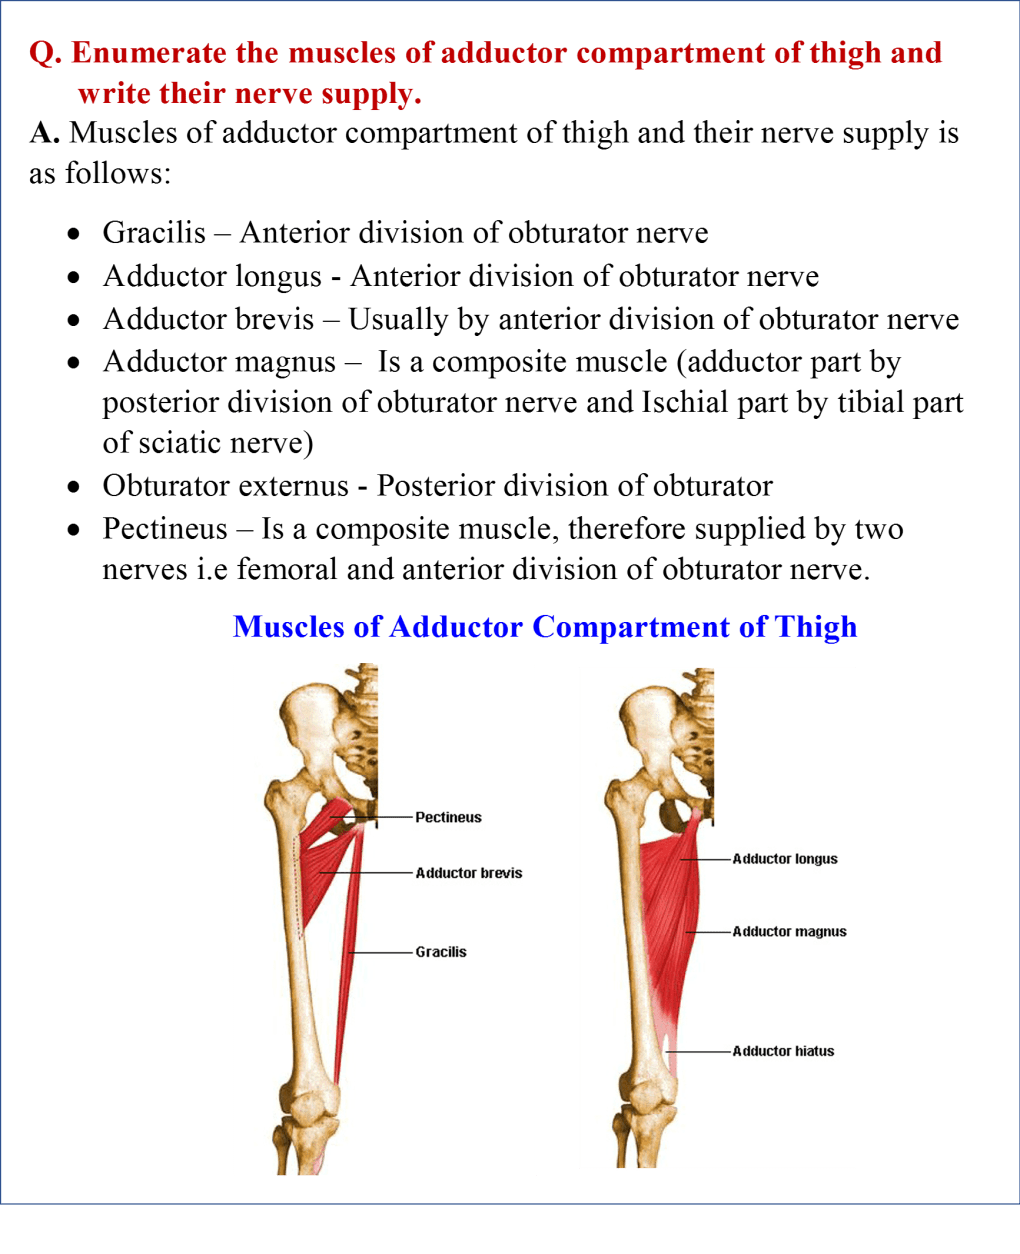 muscles of adductor compartment of thigh